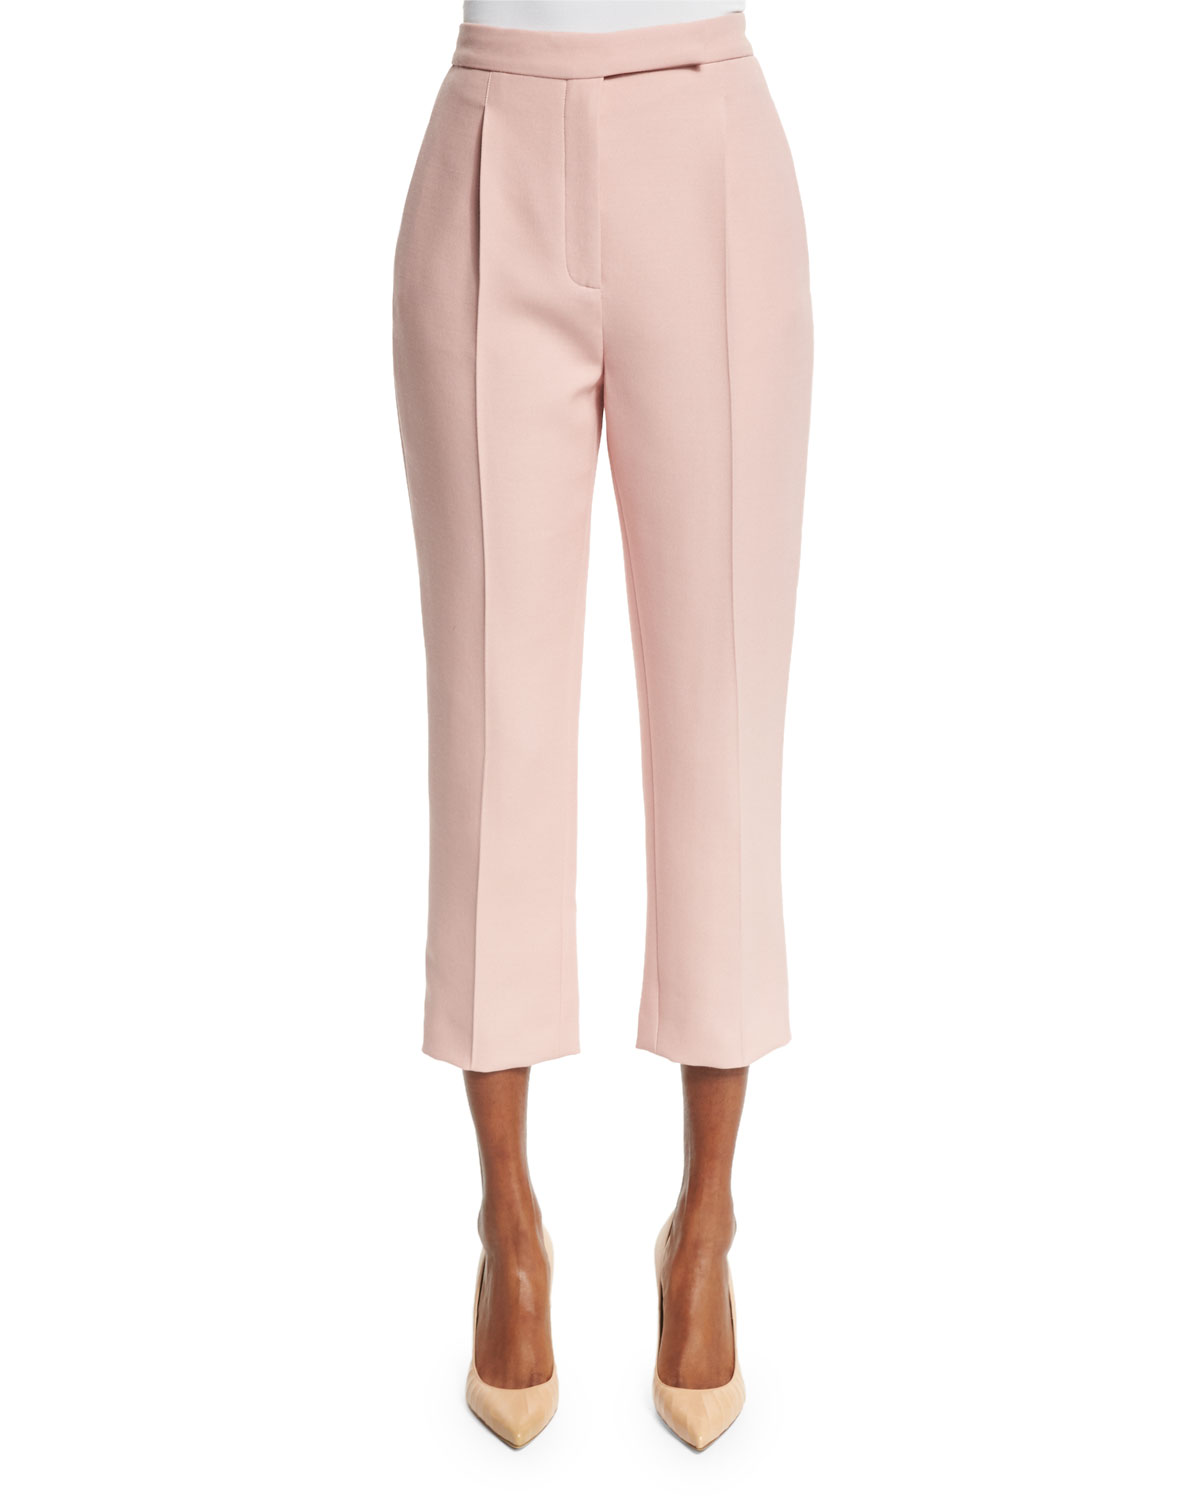 Pleated-Front Cropped Pants, Blush, Size: 38 - Valentino